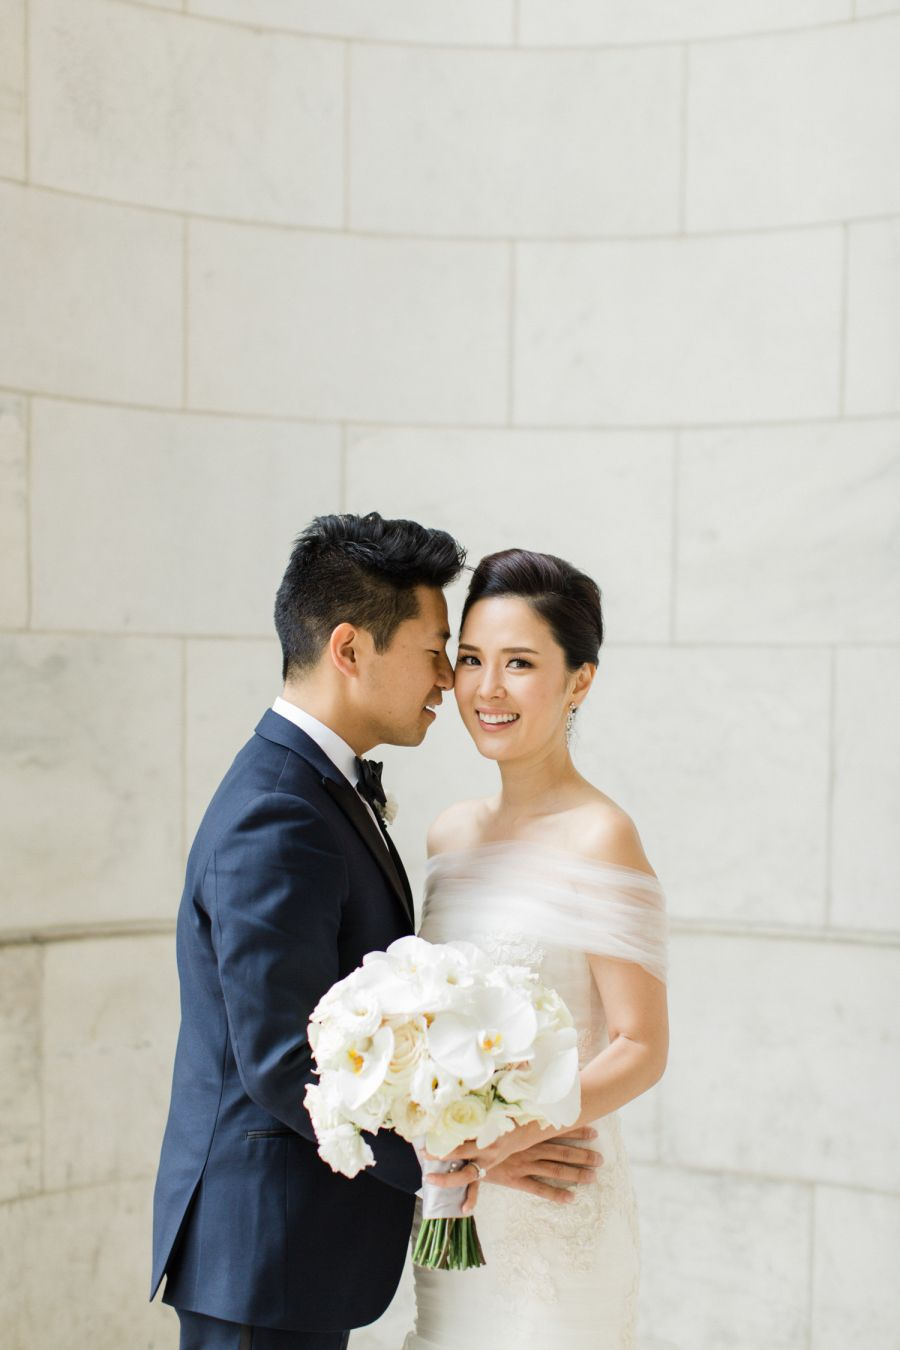 Chic Nyc Wedding At The Park Restaurant Pinterest Bridal Photography Grooms And Dress